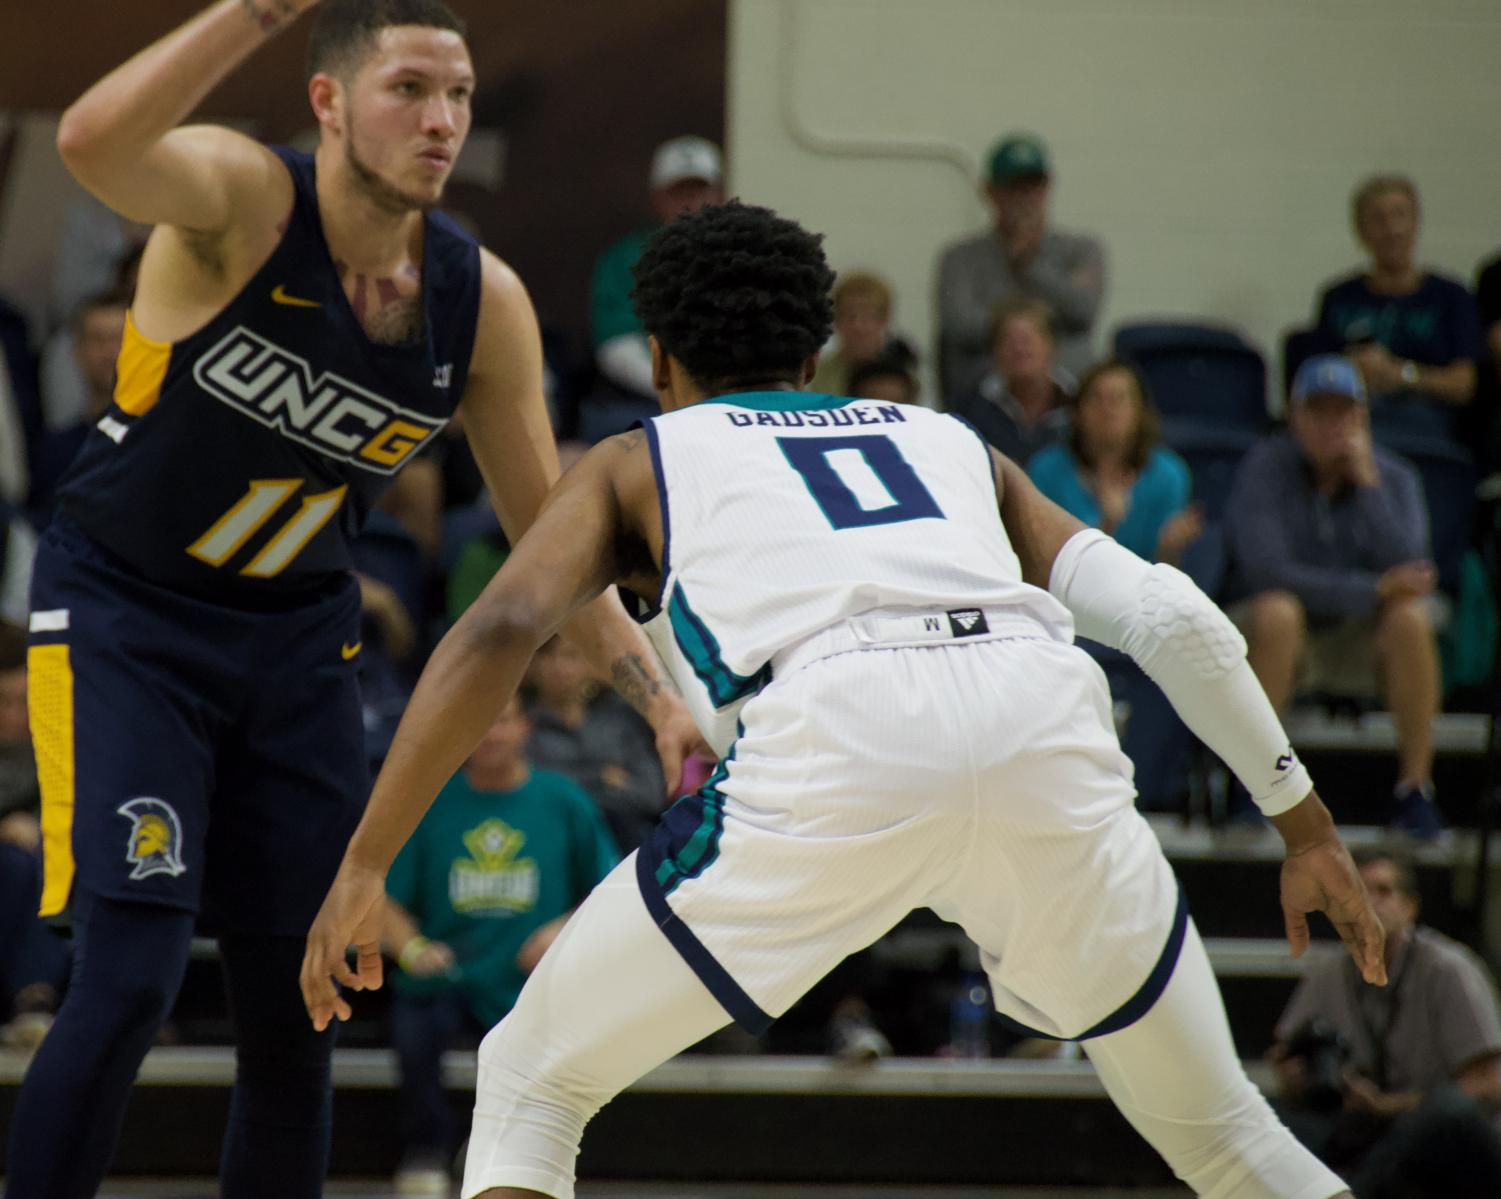 Ty Gadsden (0) gets set on defense during UNCW's Tuesday night game v.s. UNC Greensboro